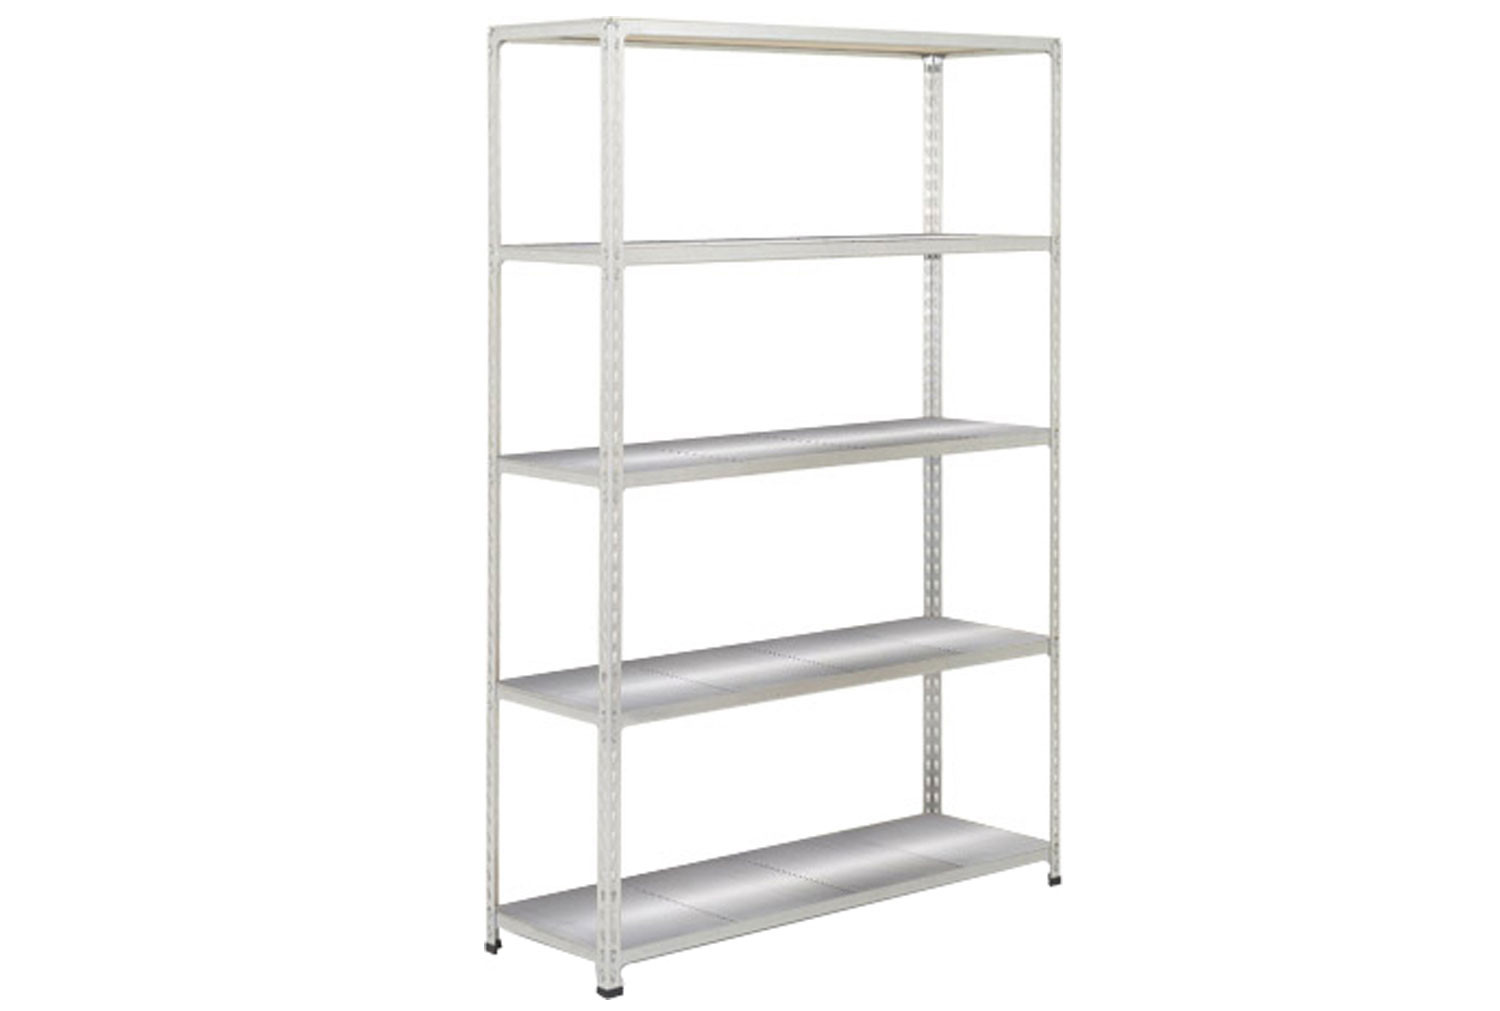 Rapid 2 Shelving With 5 Galvanized Shelves 1220wx1600h (Grey)